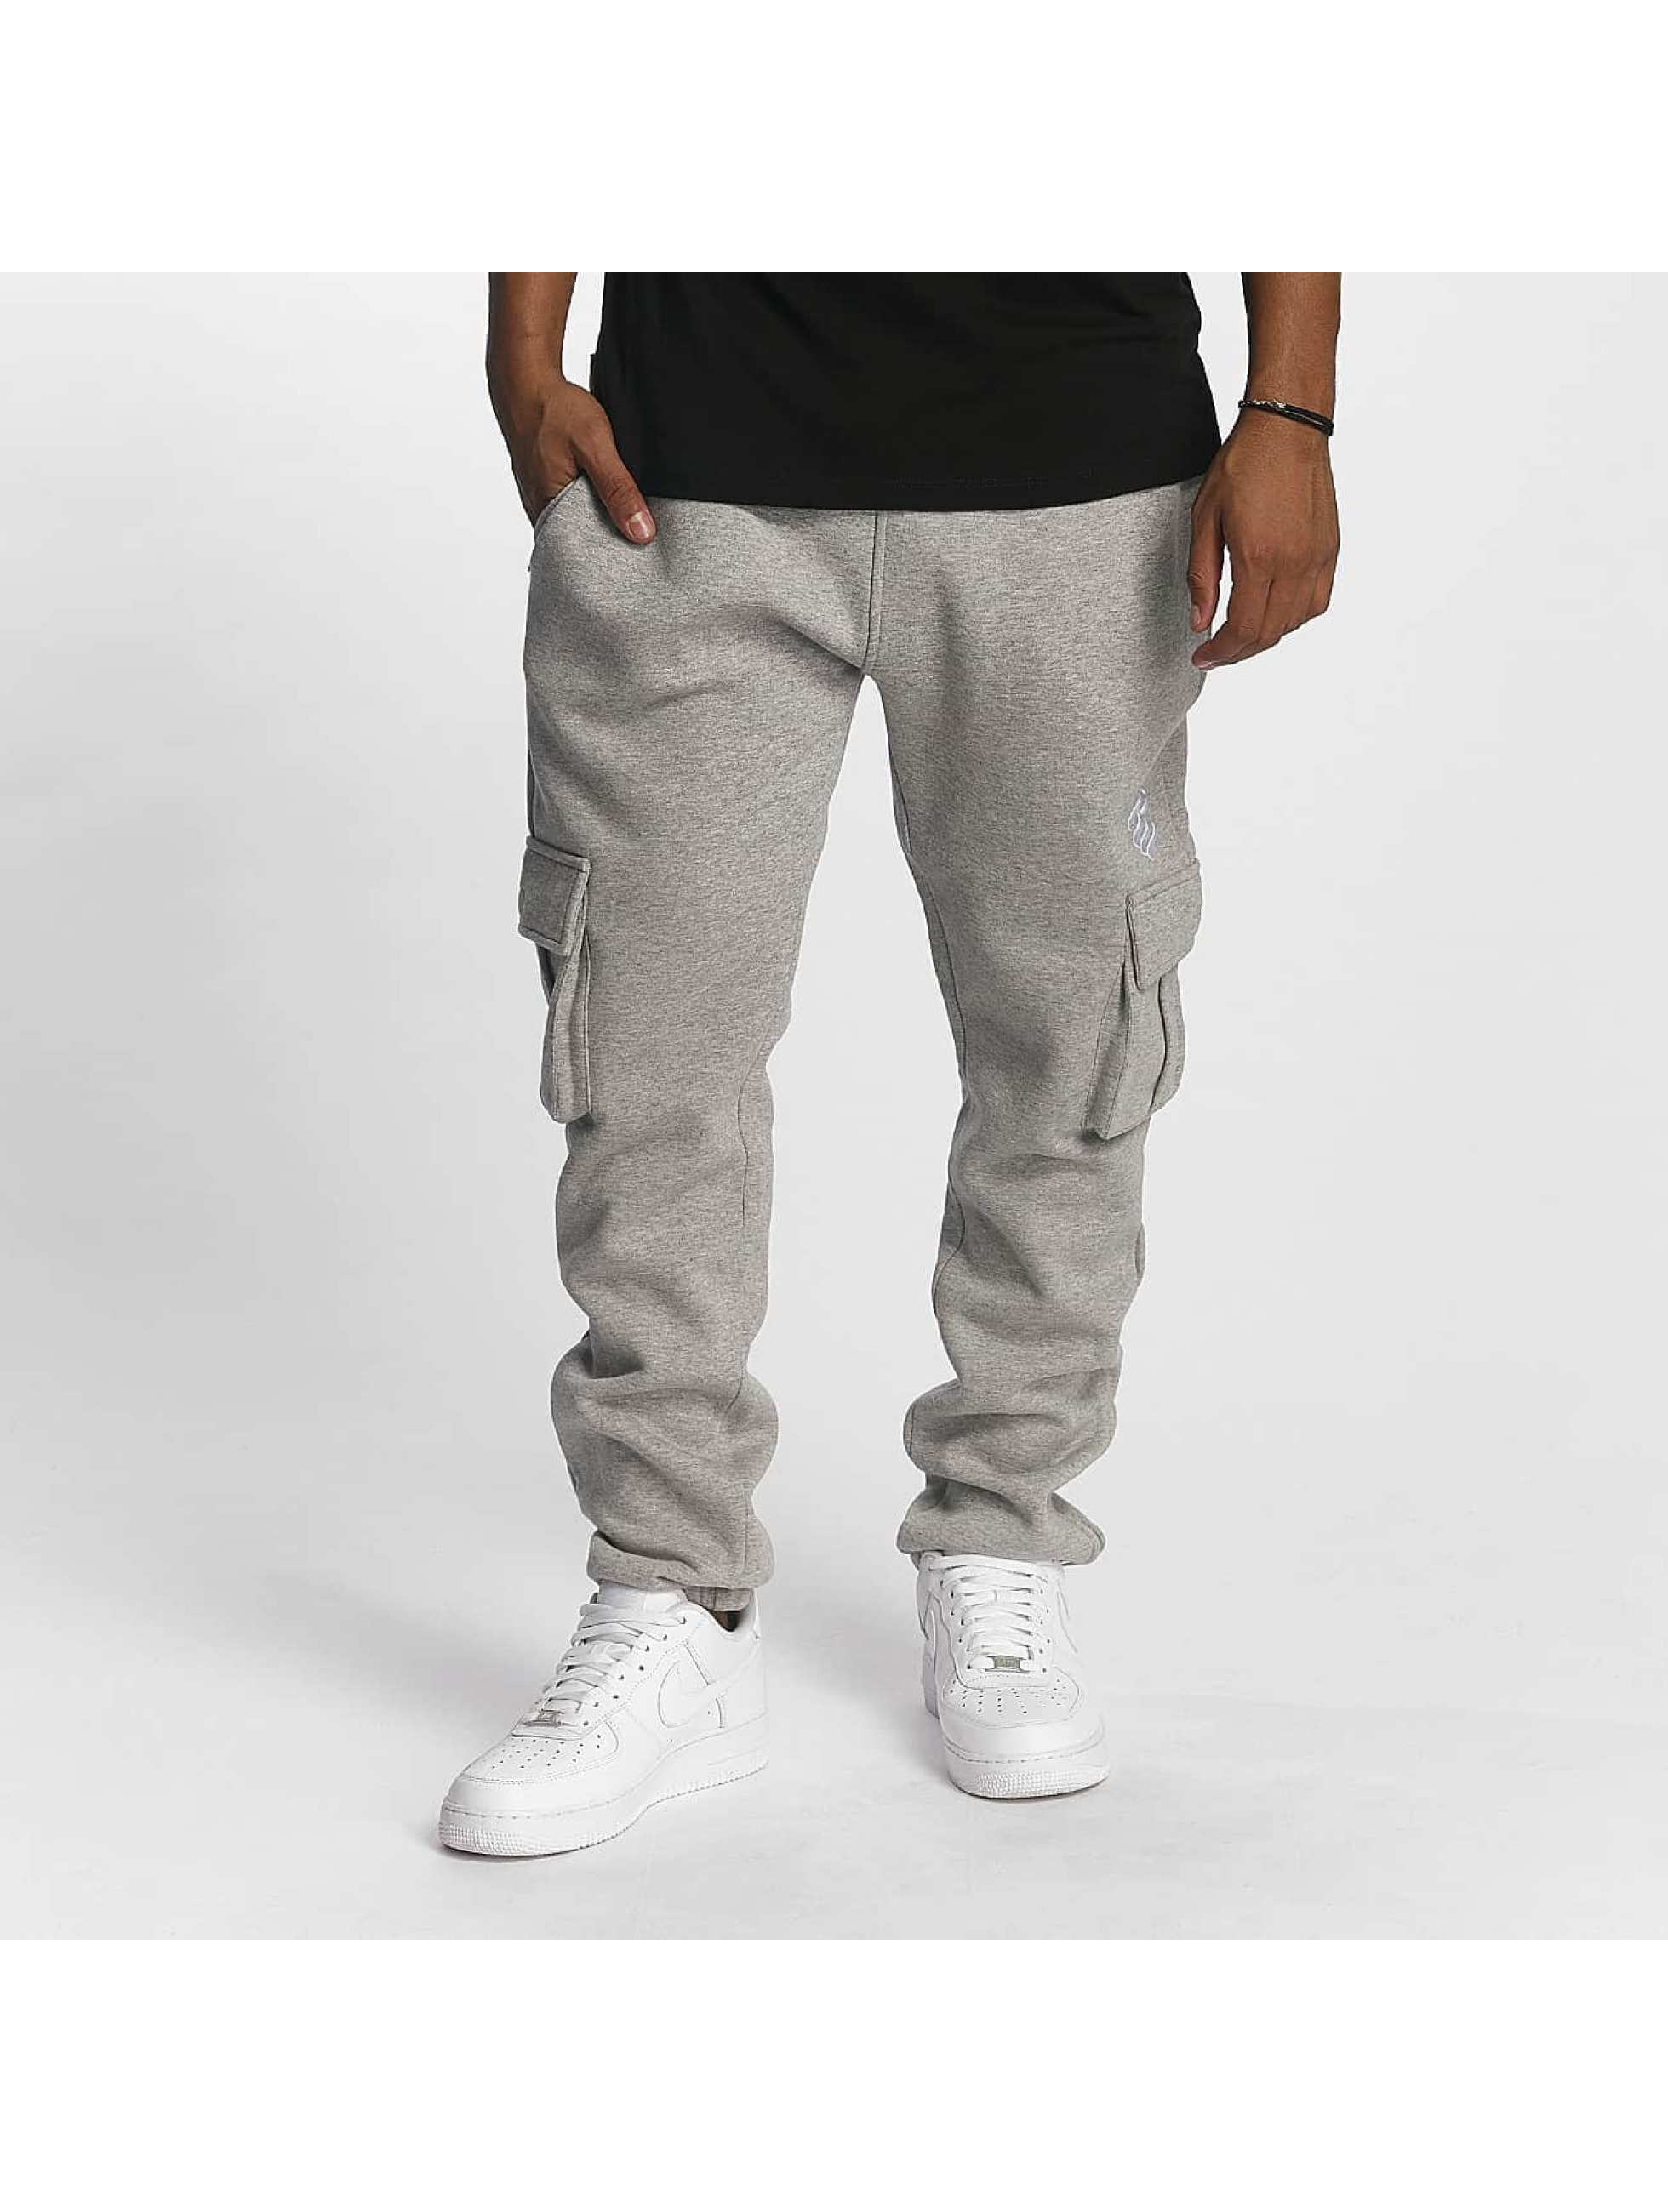 Rocawear / Sweat Pant Bags in grey S